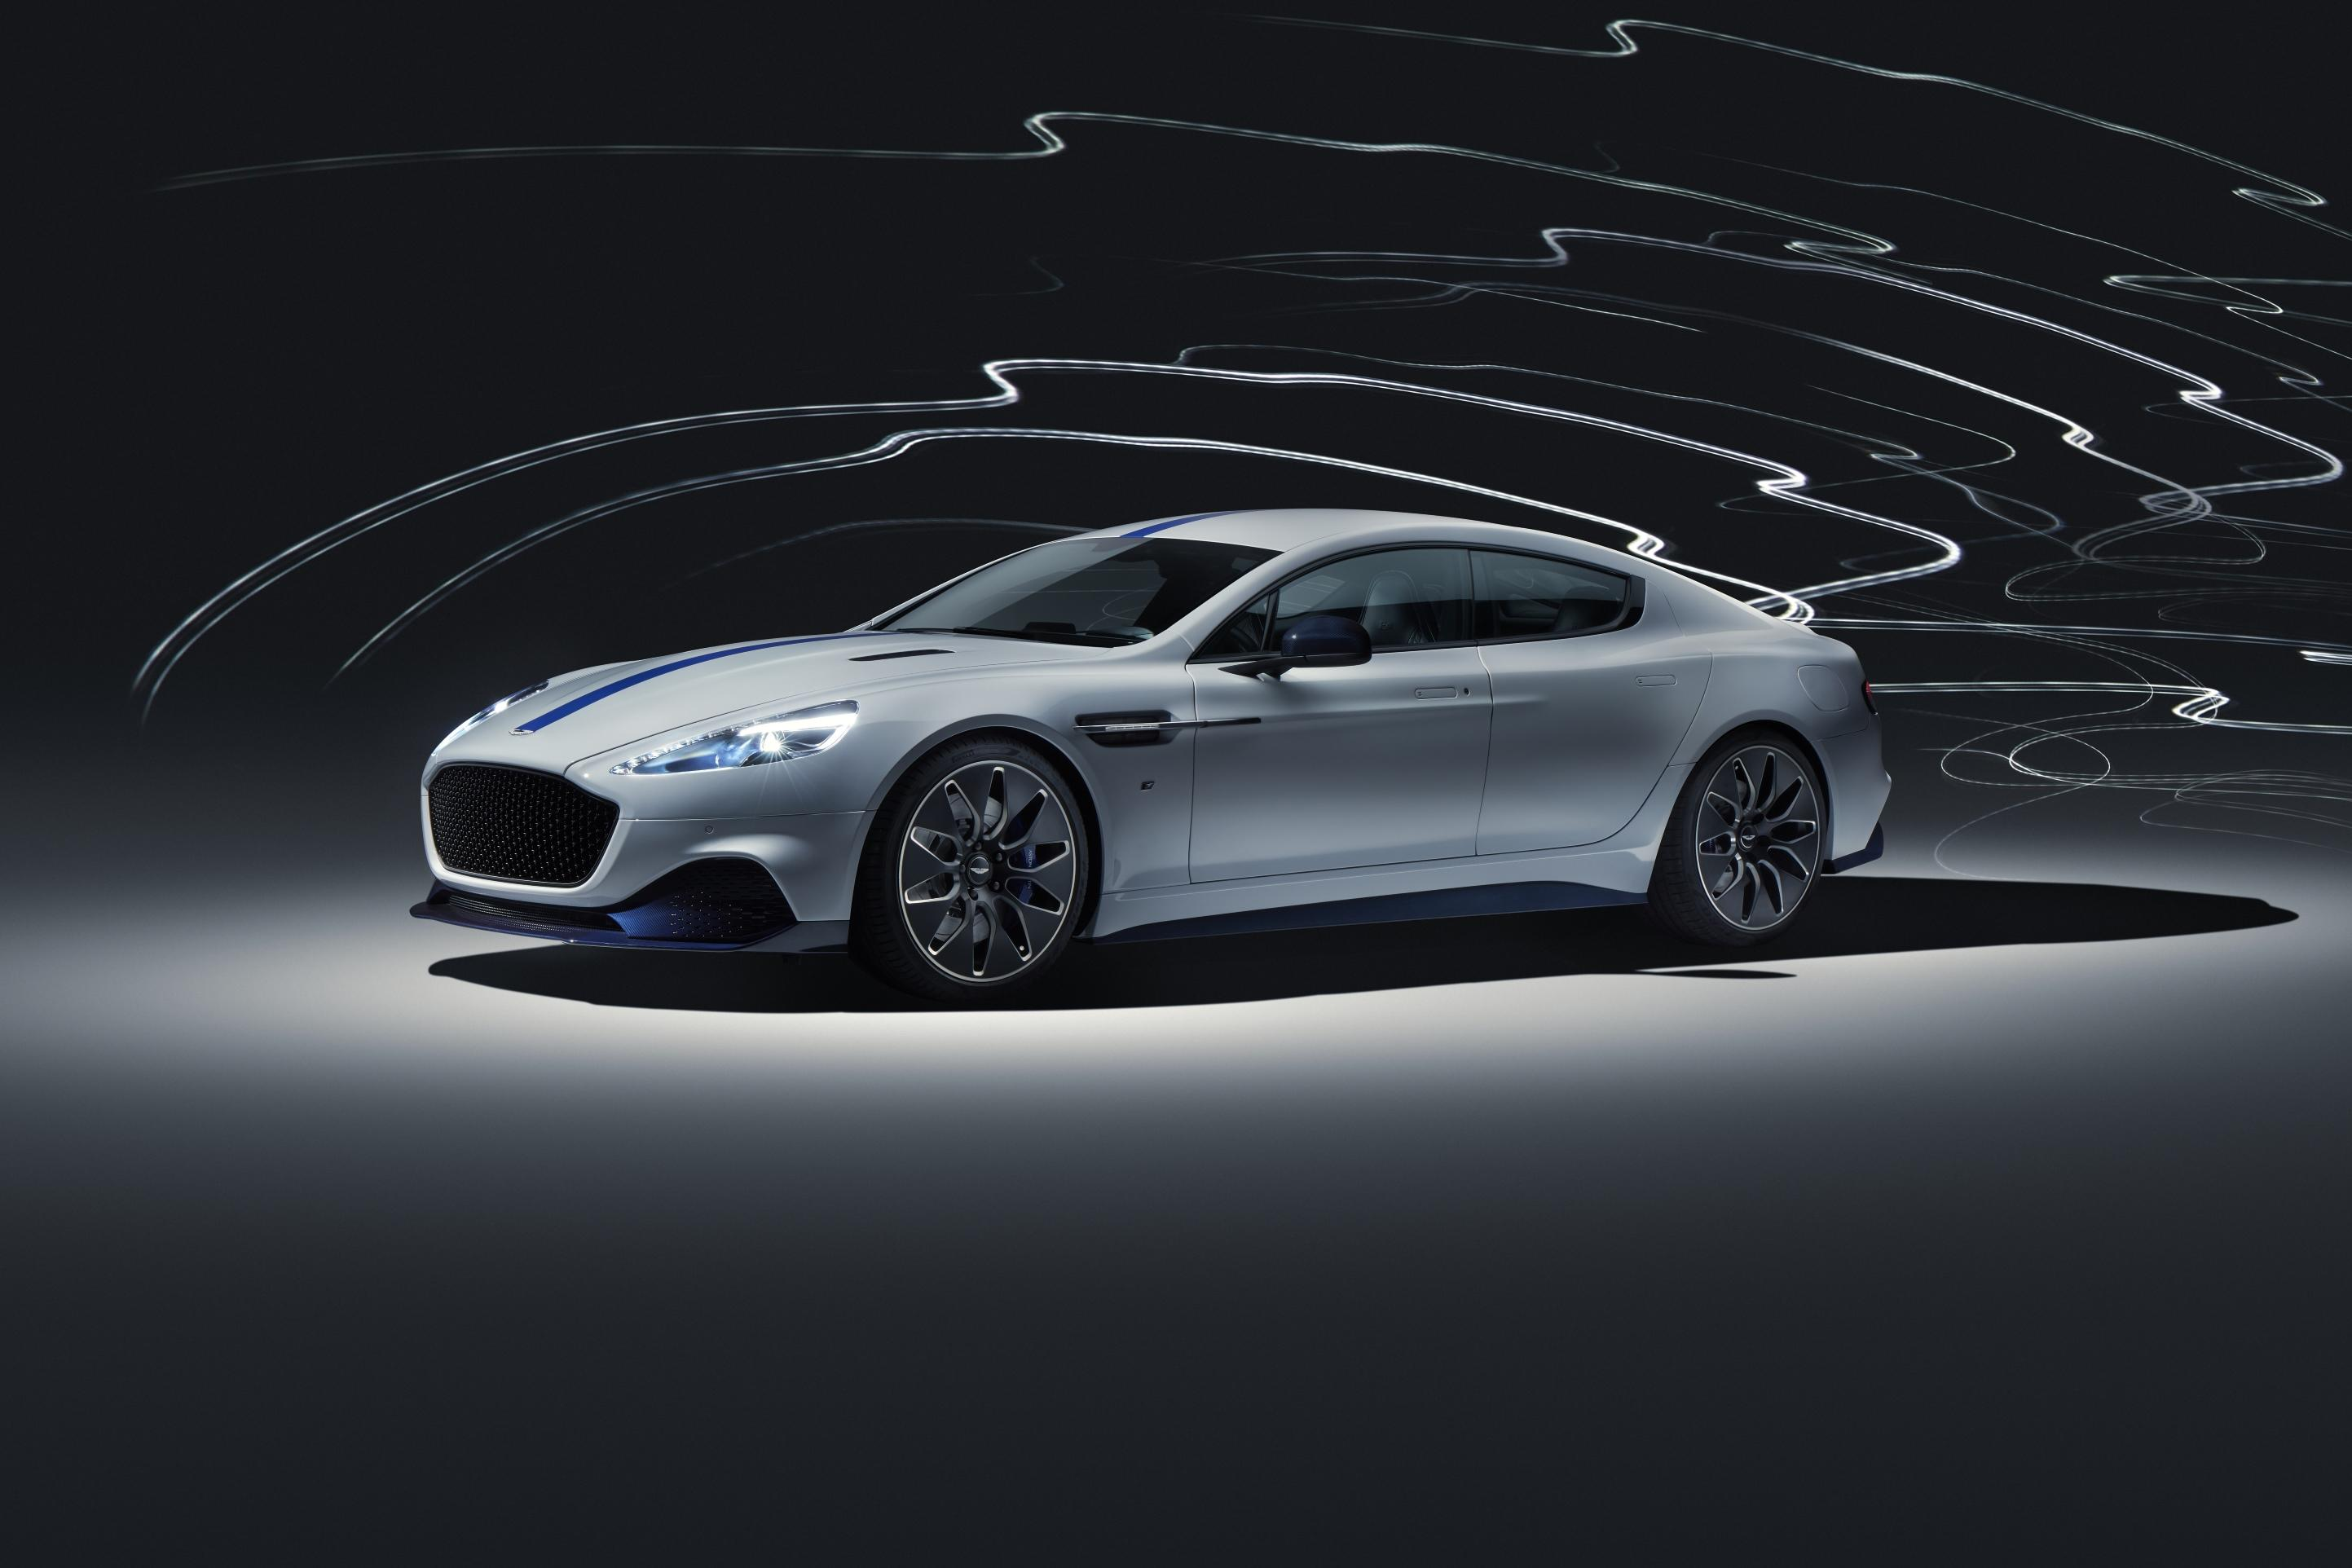 Geely may pump much-needed cash into Aston Martin